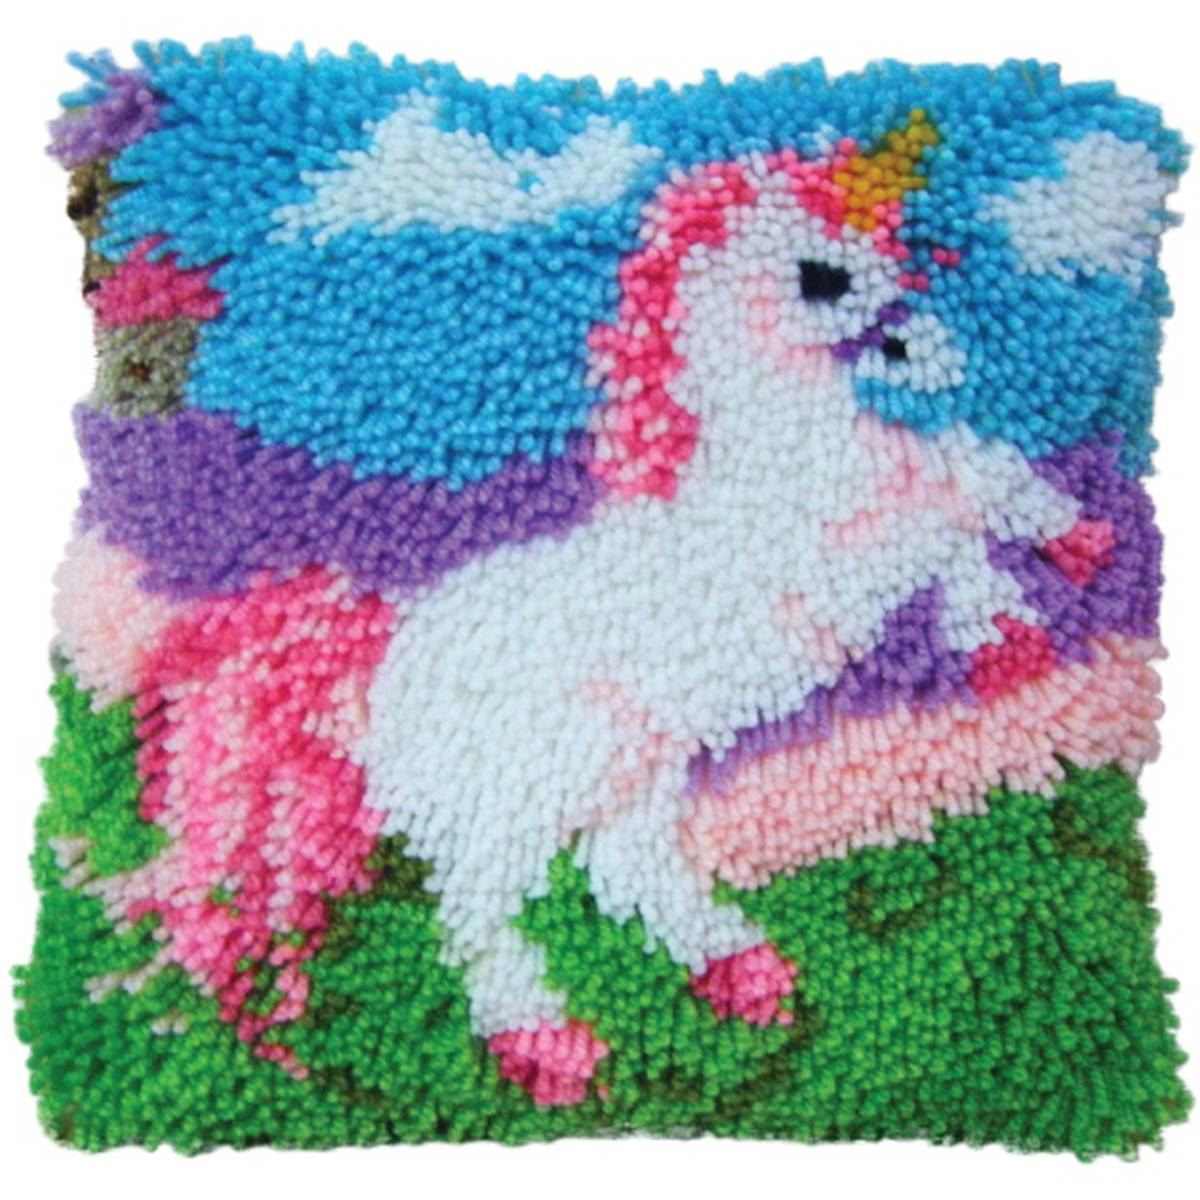 Hobbycraft Latch Hook Kit 13 X 13 In Cushion Cover Rug